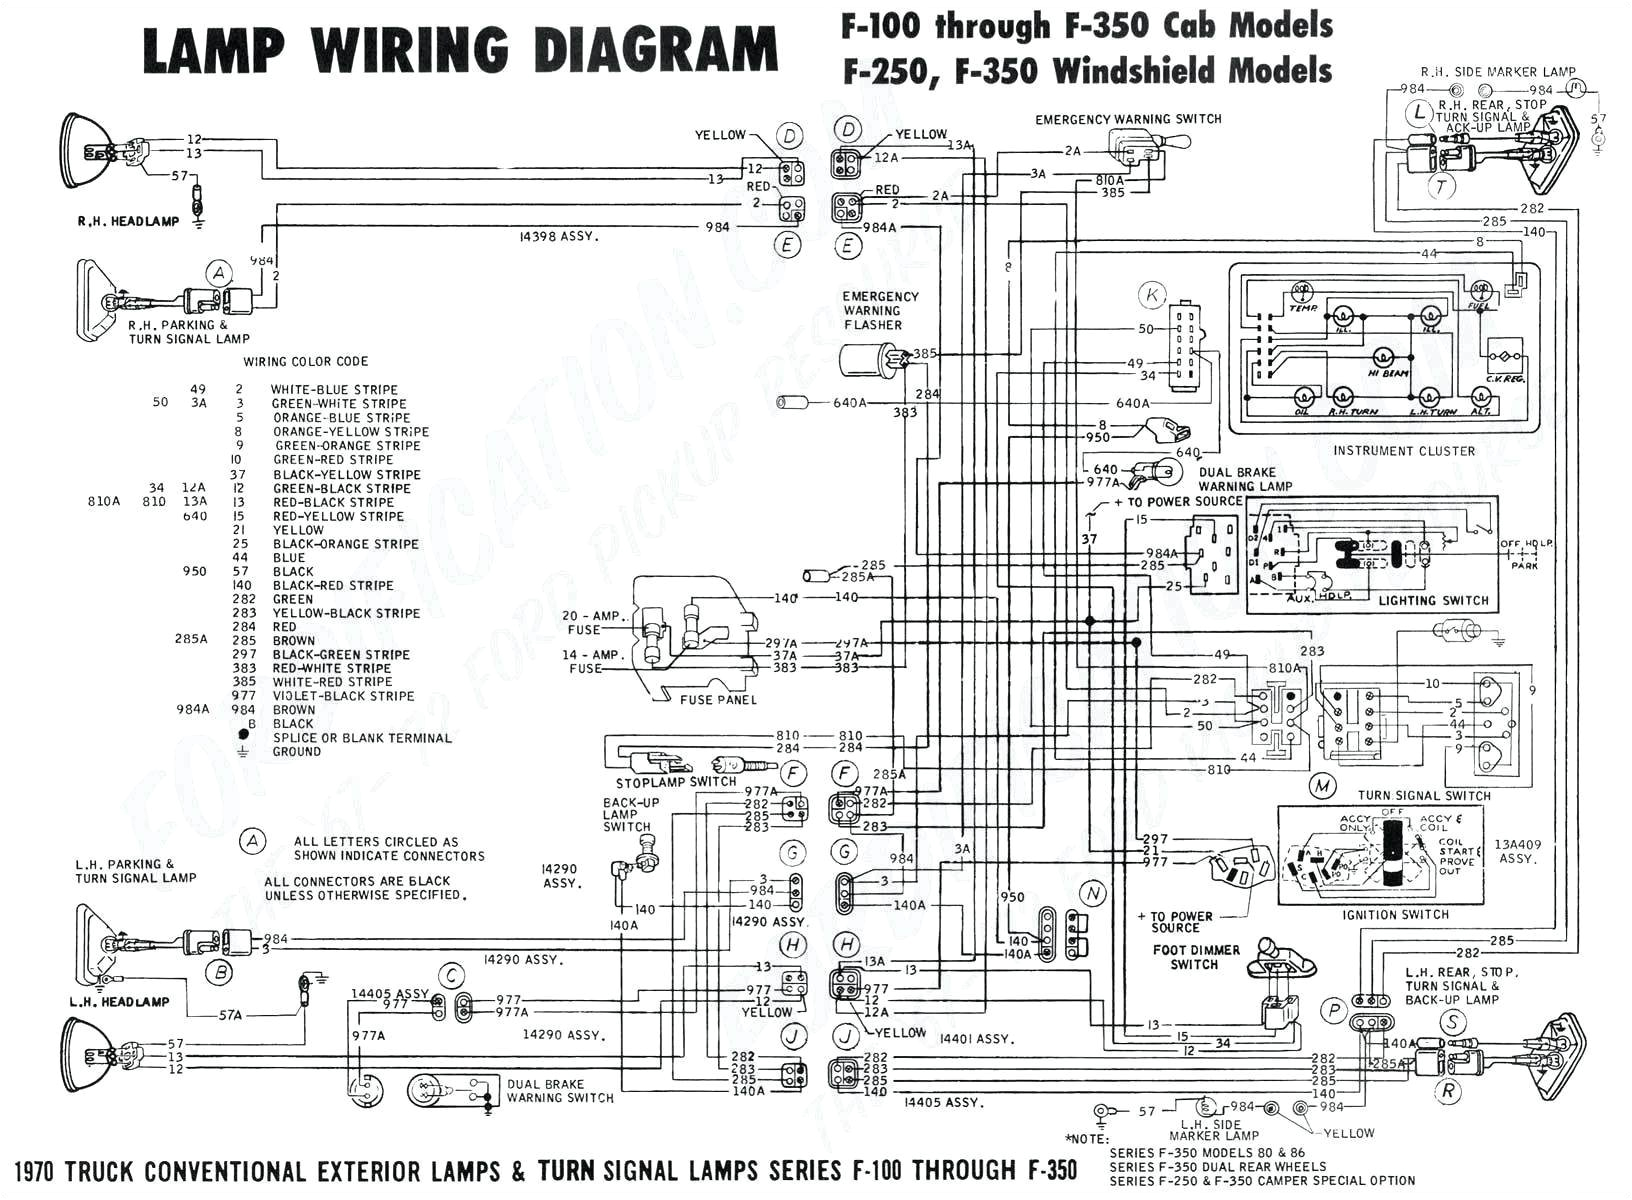 honeywell thermostat installation diagram wiring diagram database circuit diagram likewise bad ignition control module on lennox wiring